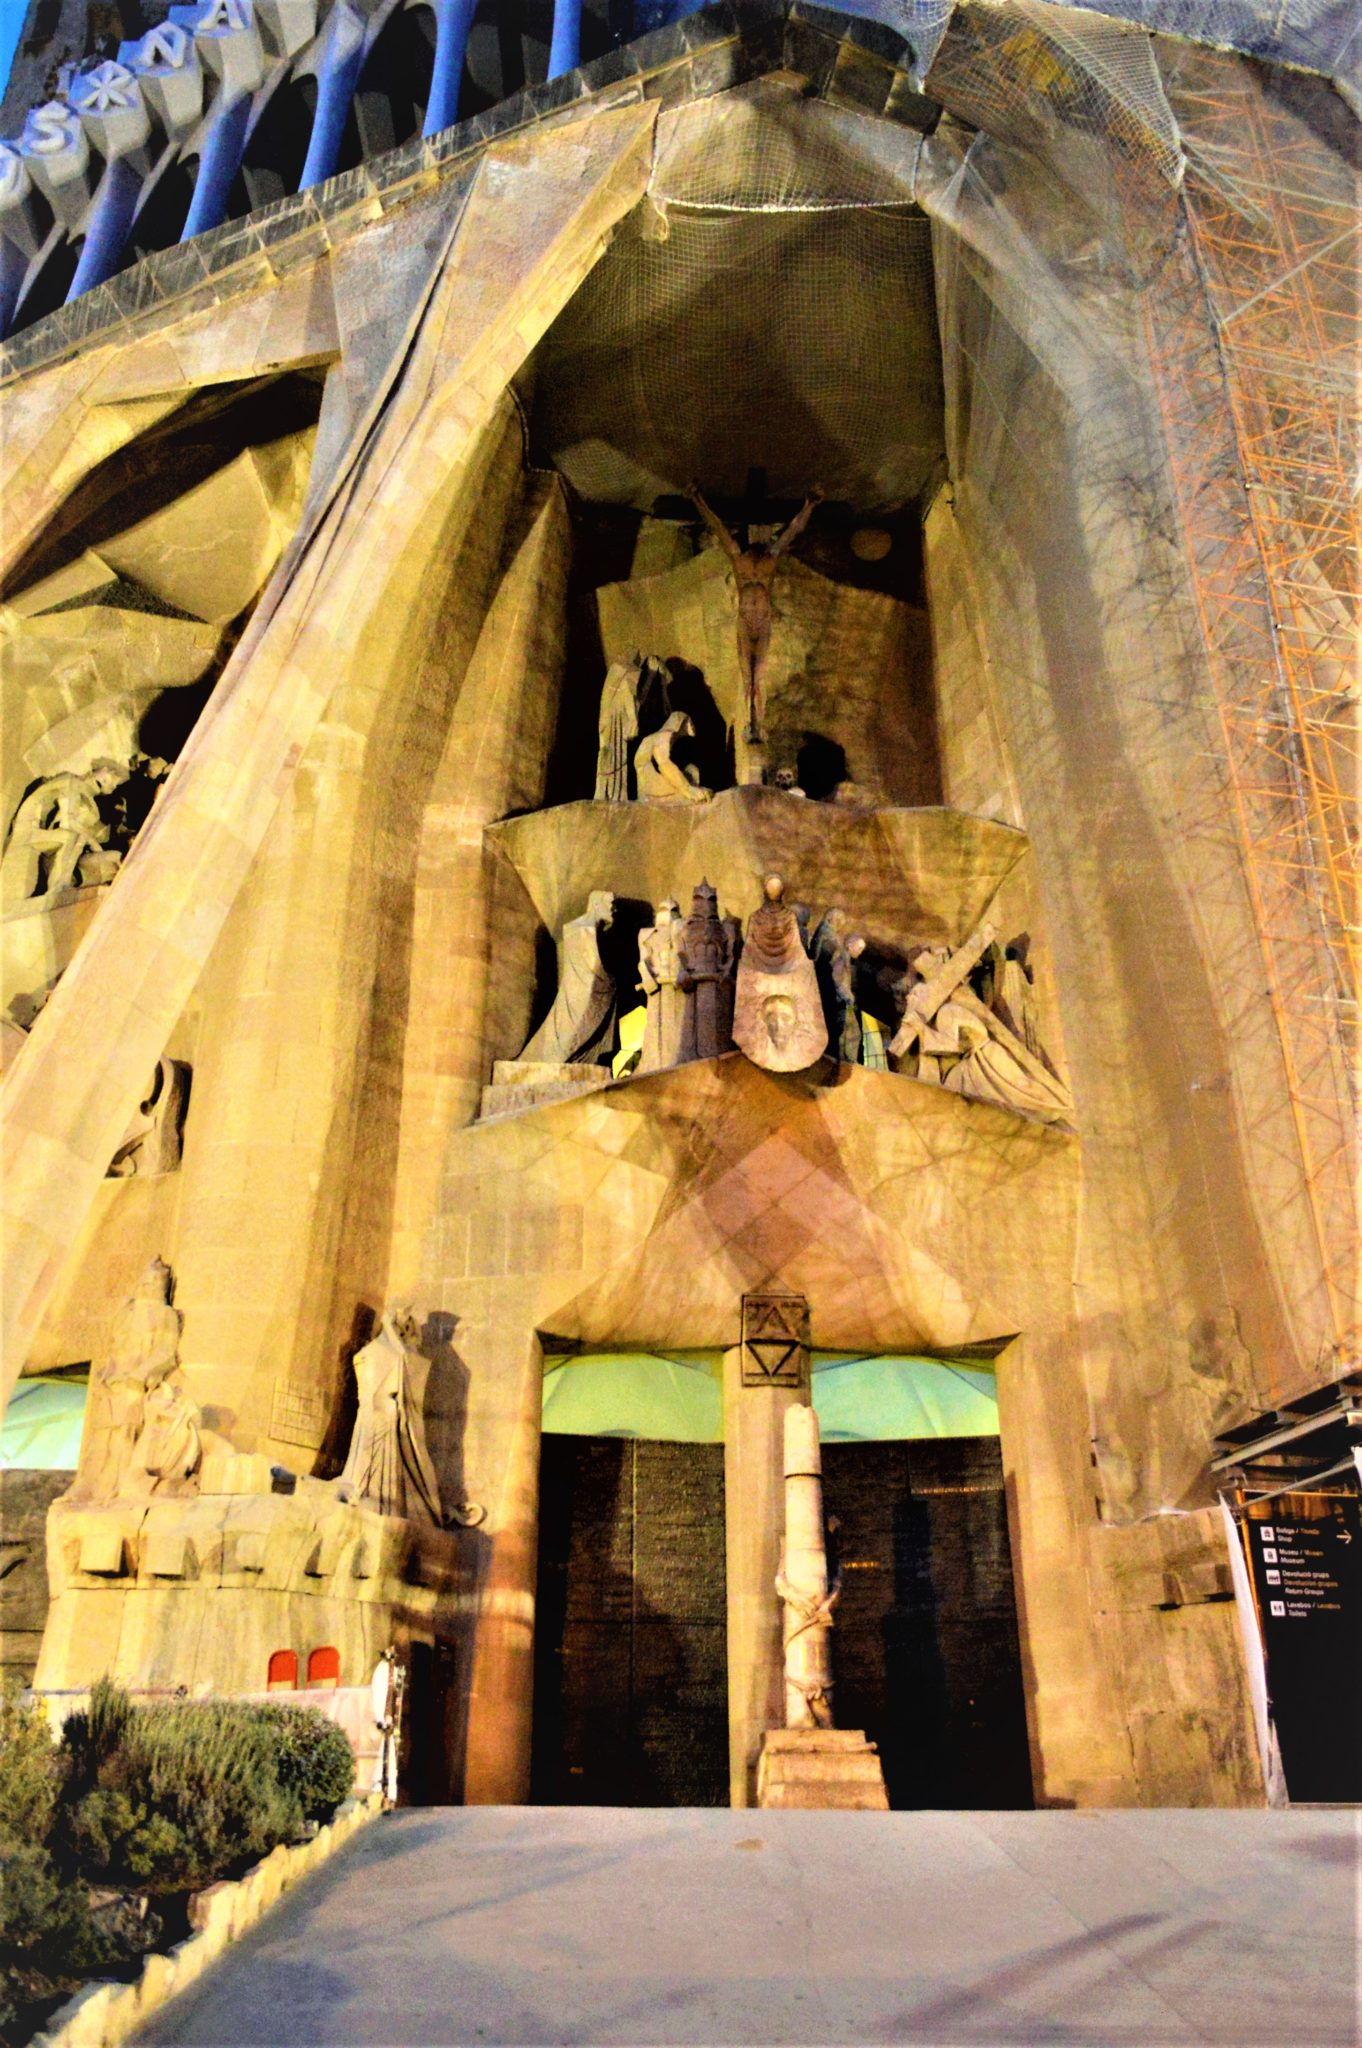 Entrance doors, Sagrada Famlia, Barcelona, Spain